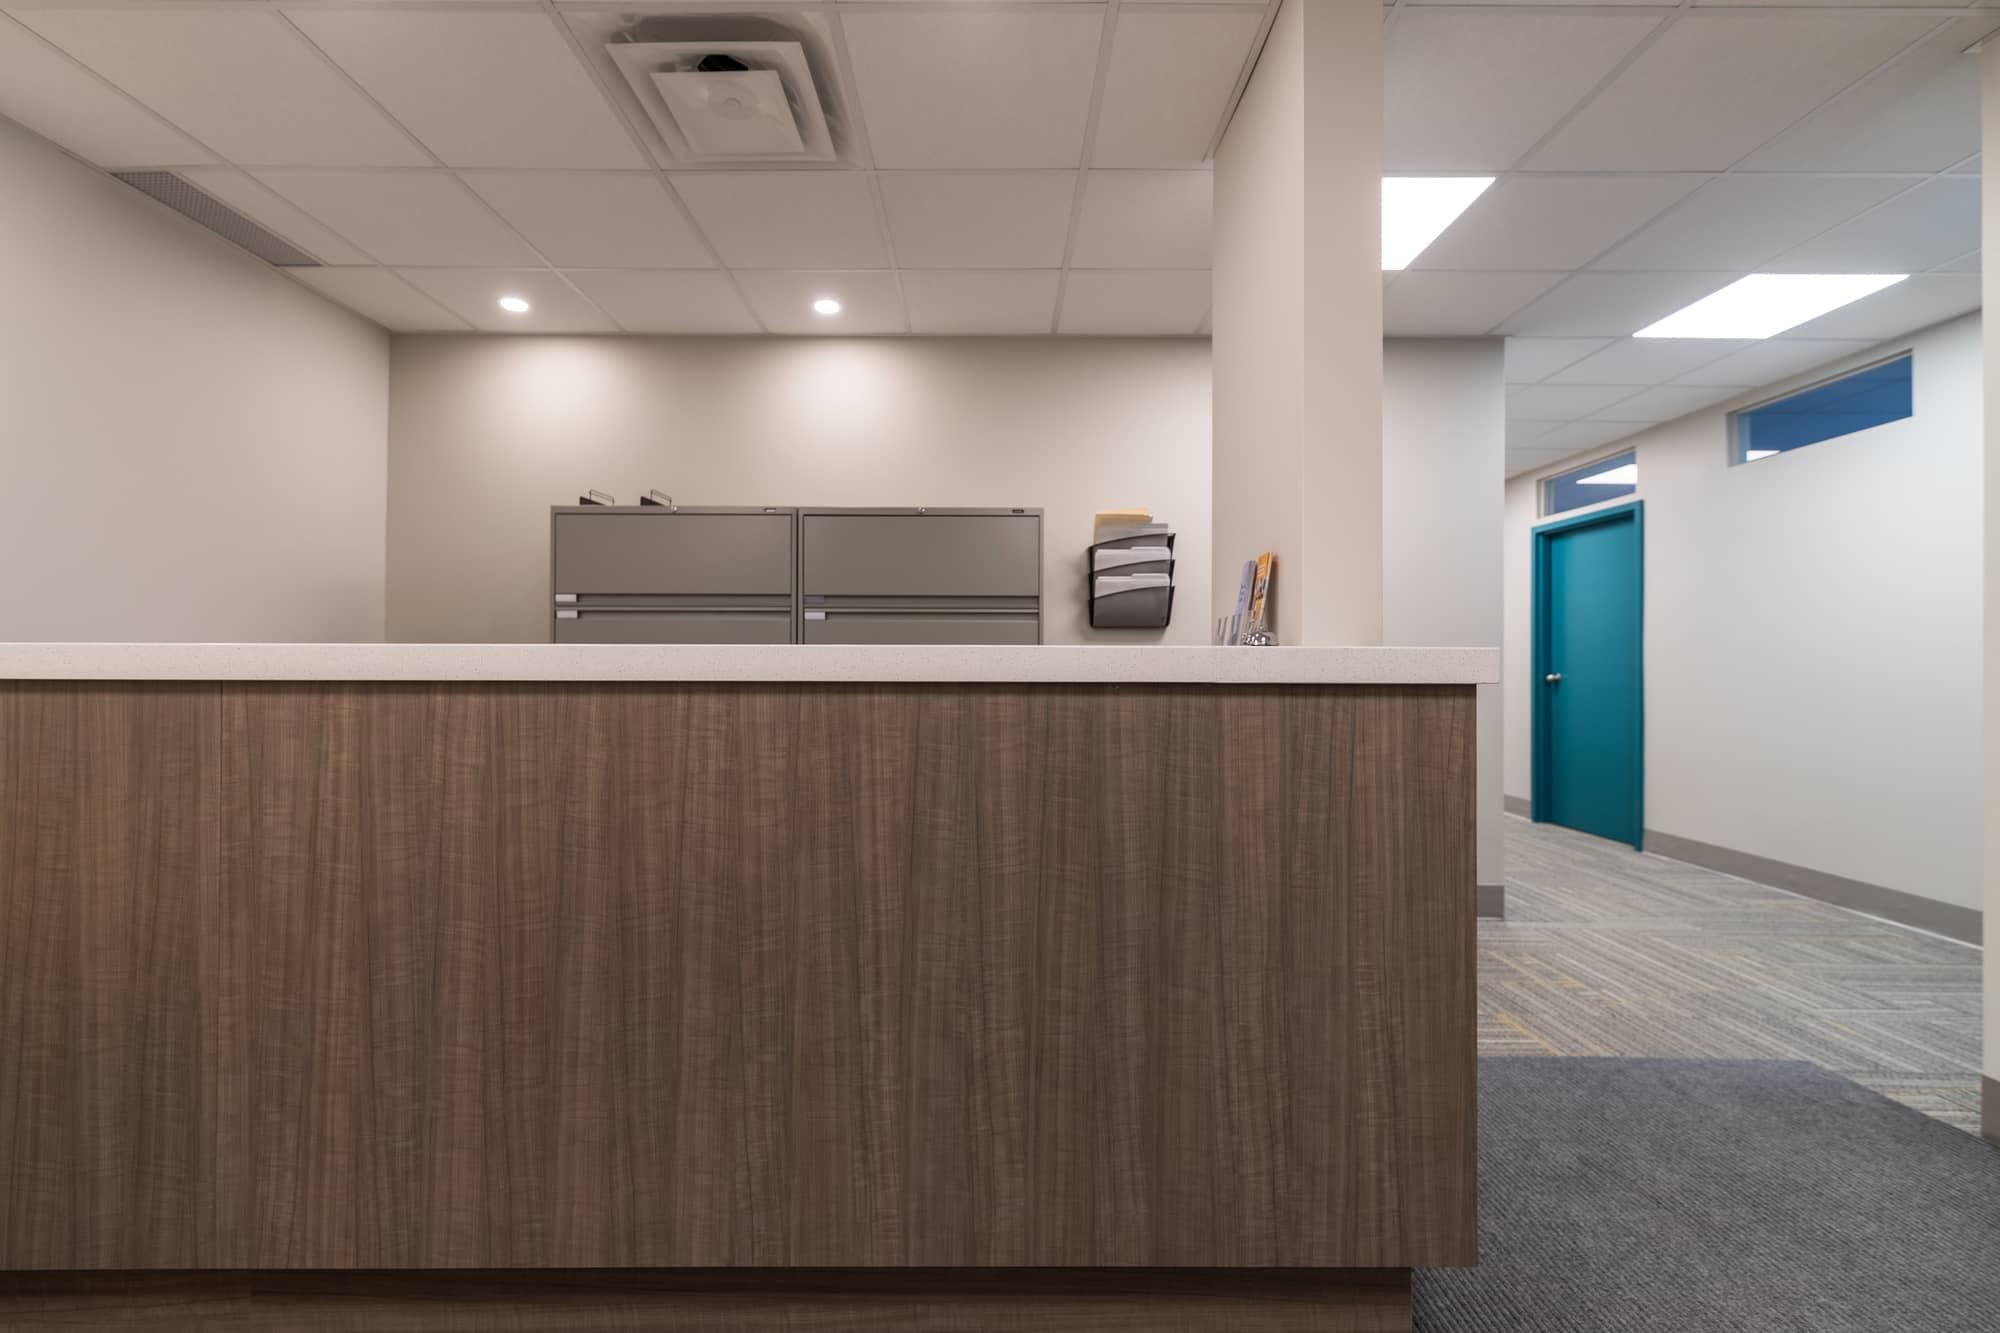 Reception desk in a newly renovated physiotherapy clinic